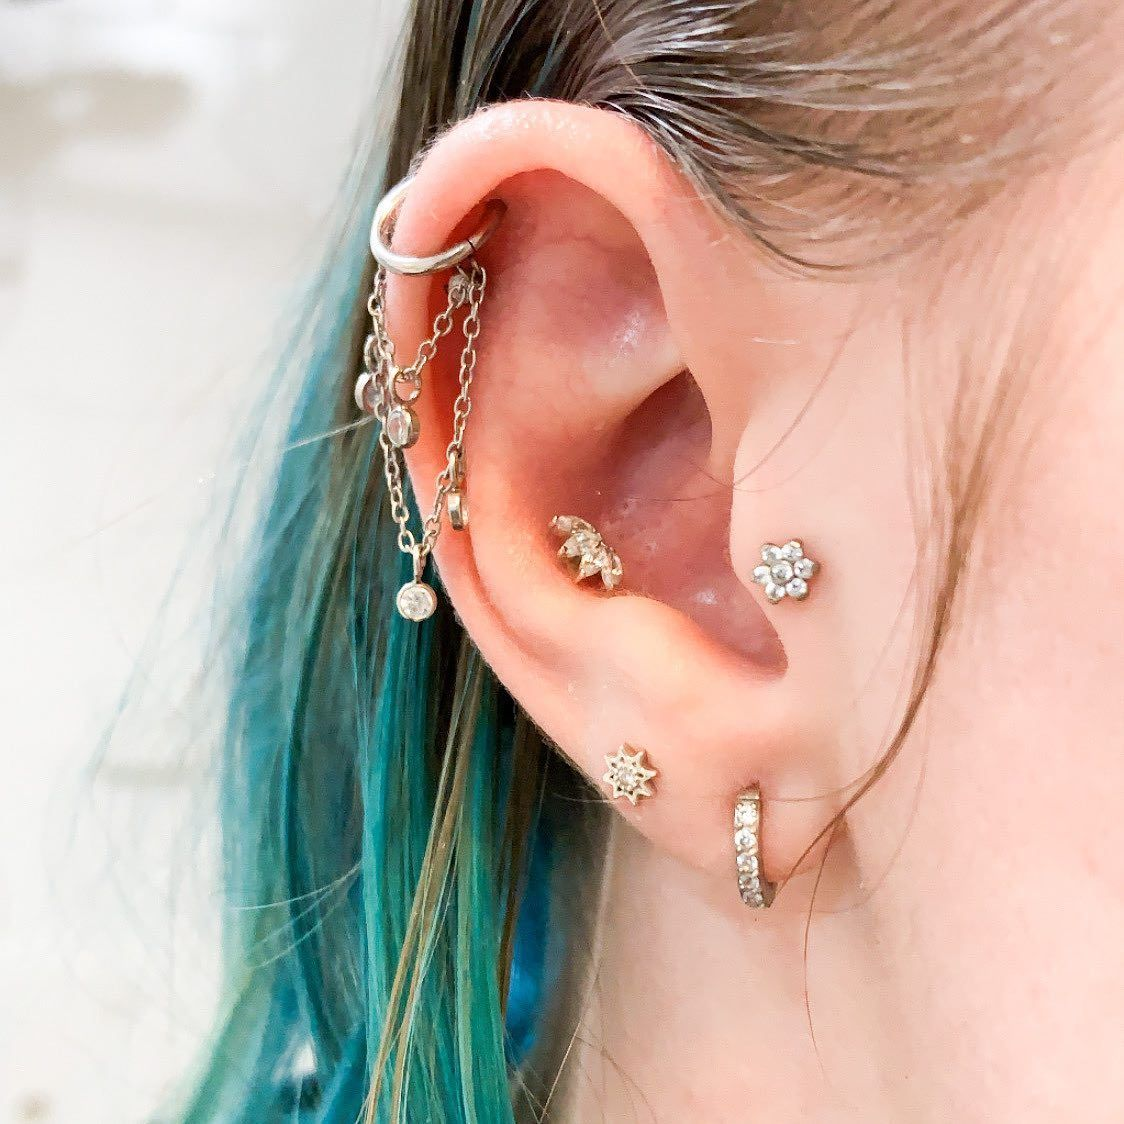 CZ Simple cartilage earring silver blue cartilage stud Tragus earring conch stud